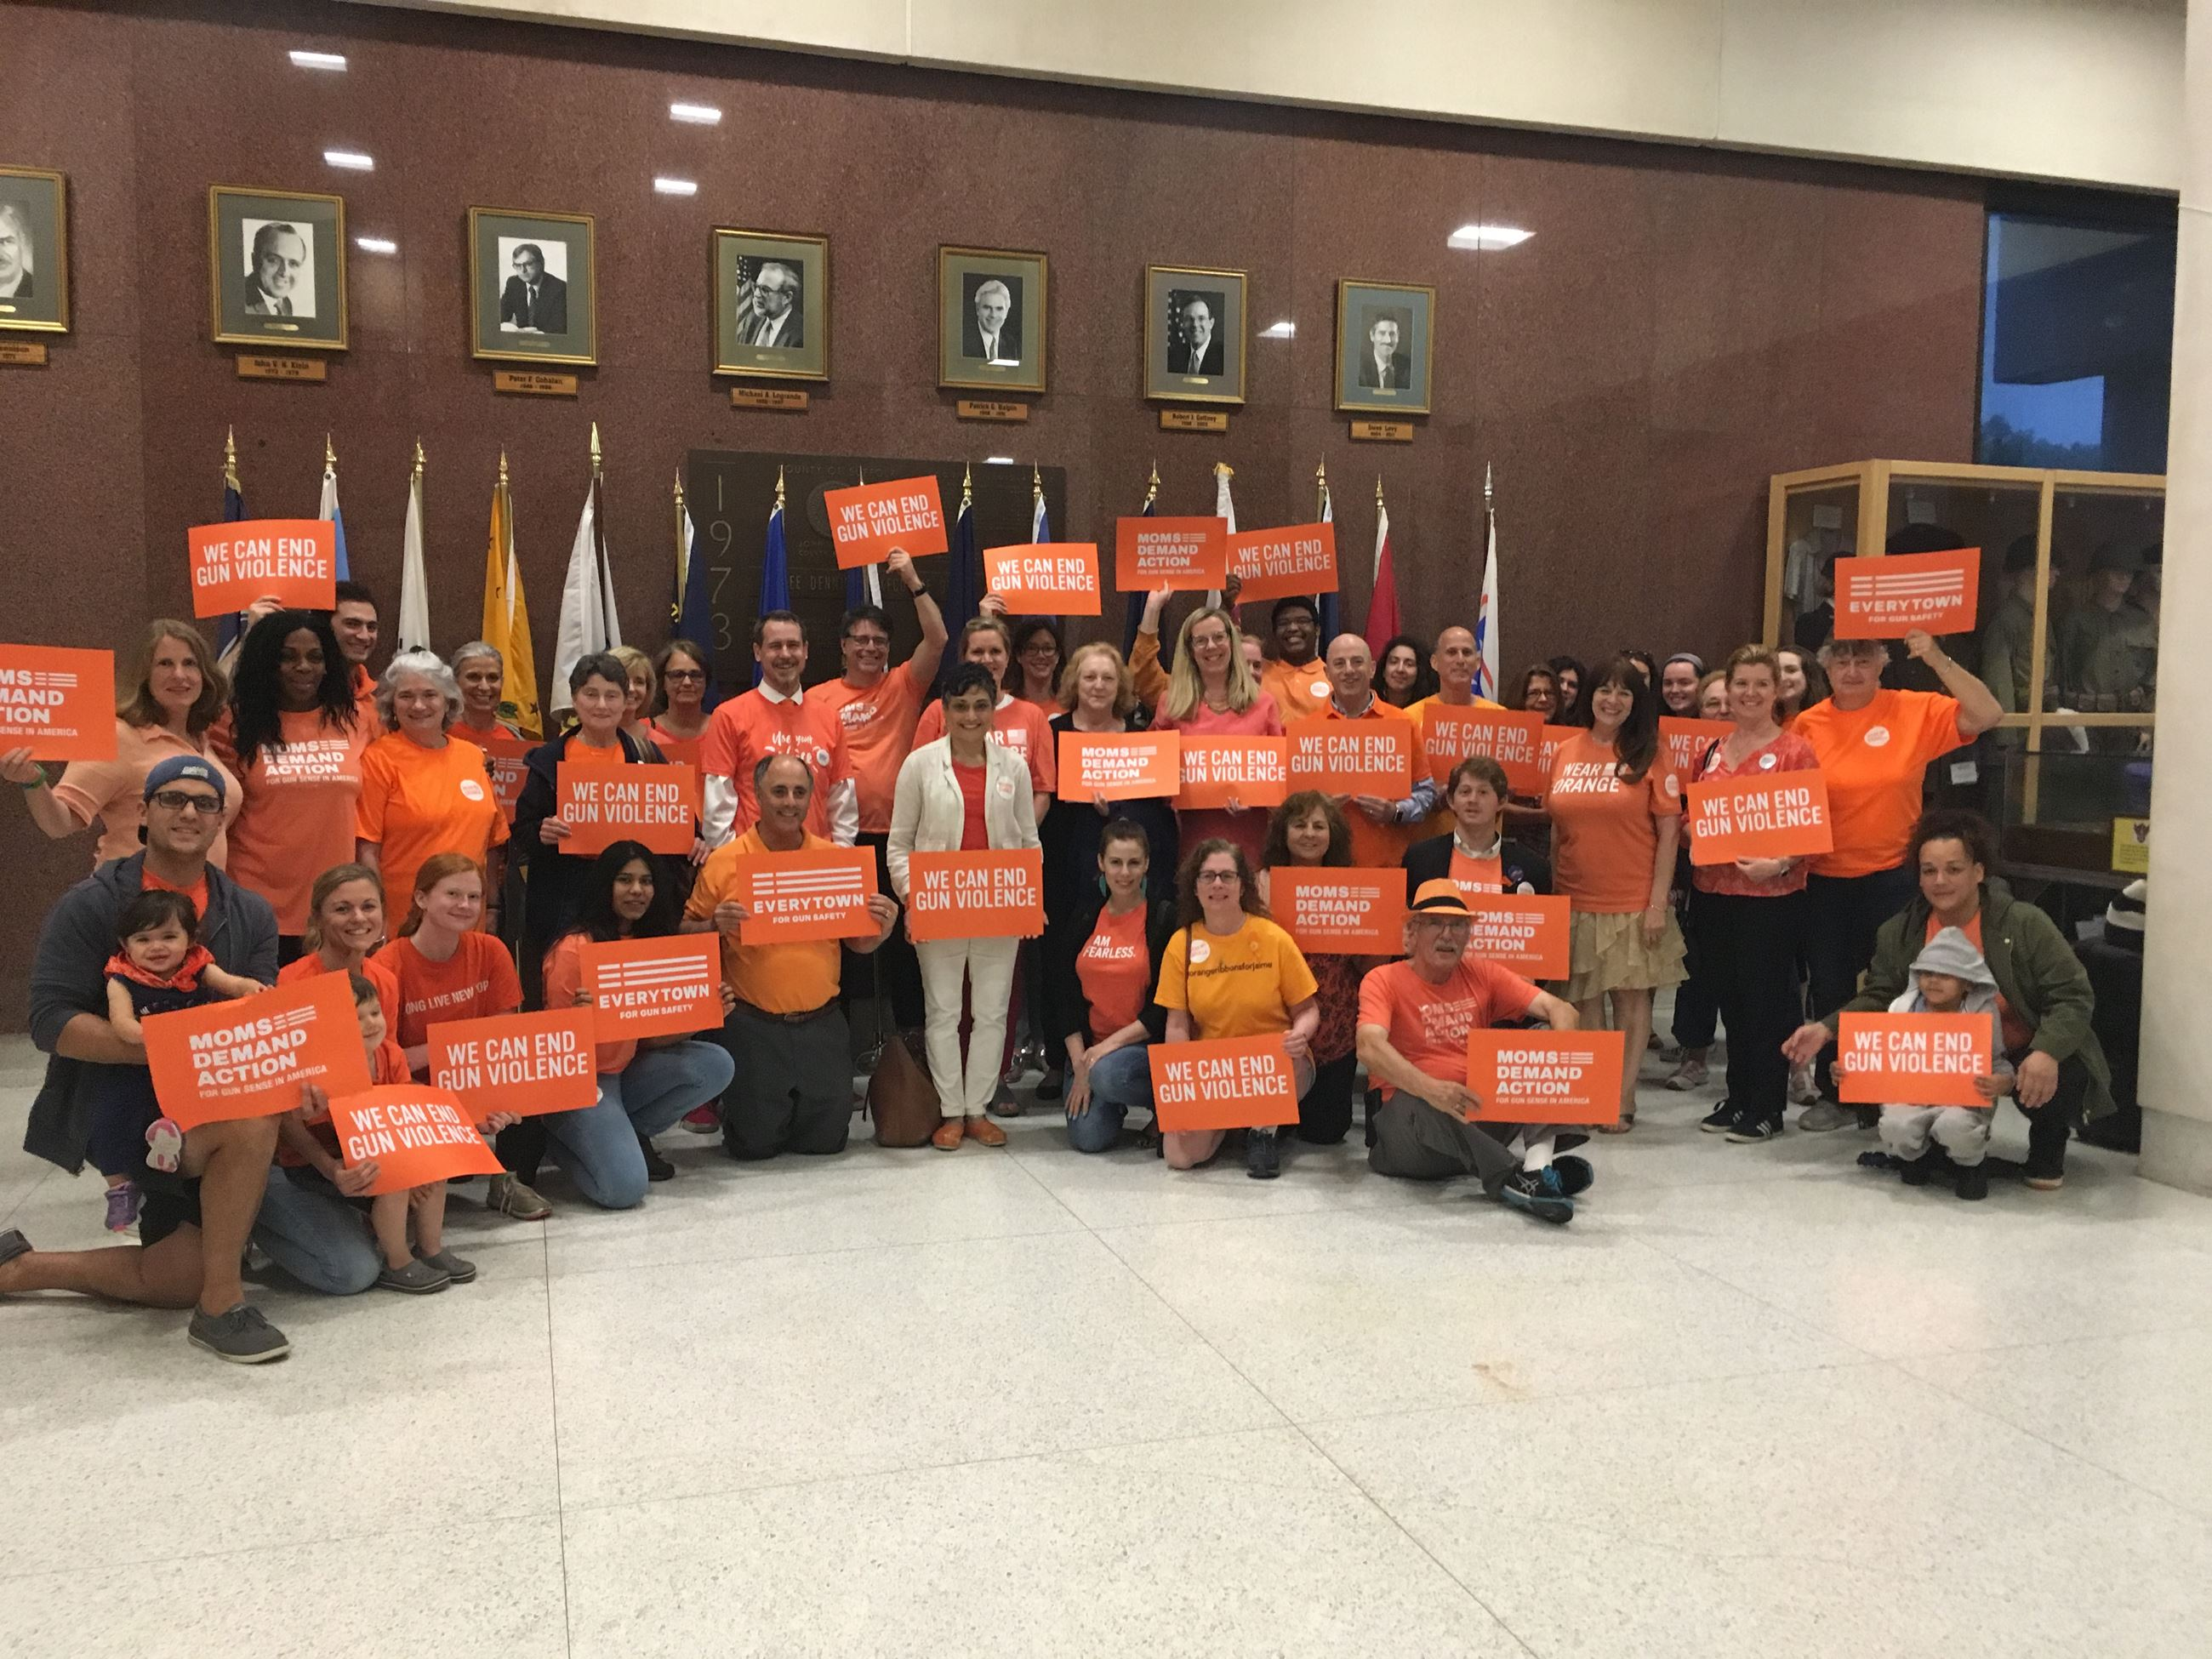 Suffolk_Observes_Gun_Violence_Awareness_Day_2